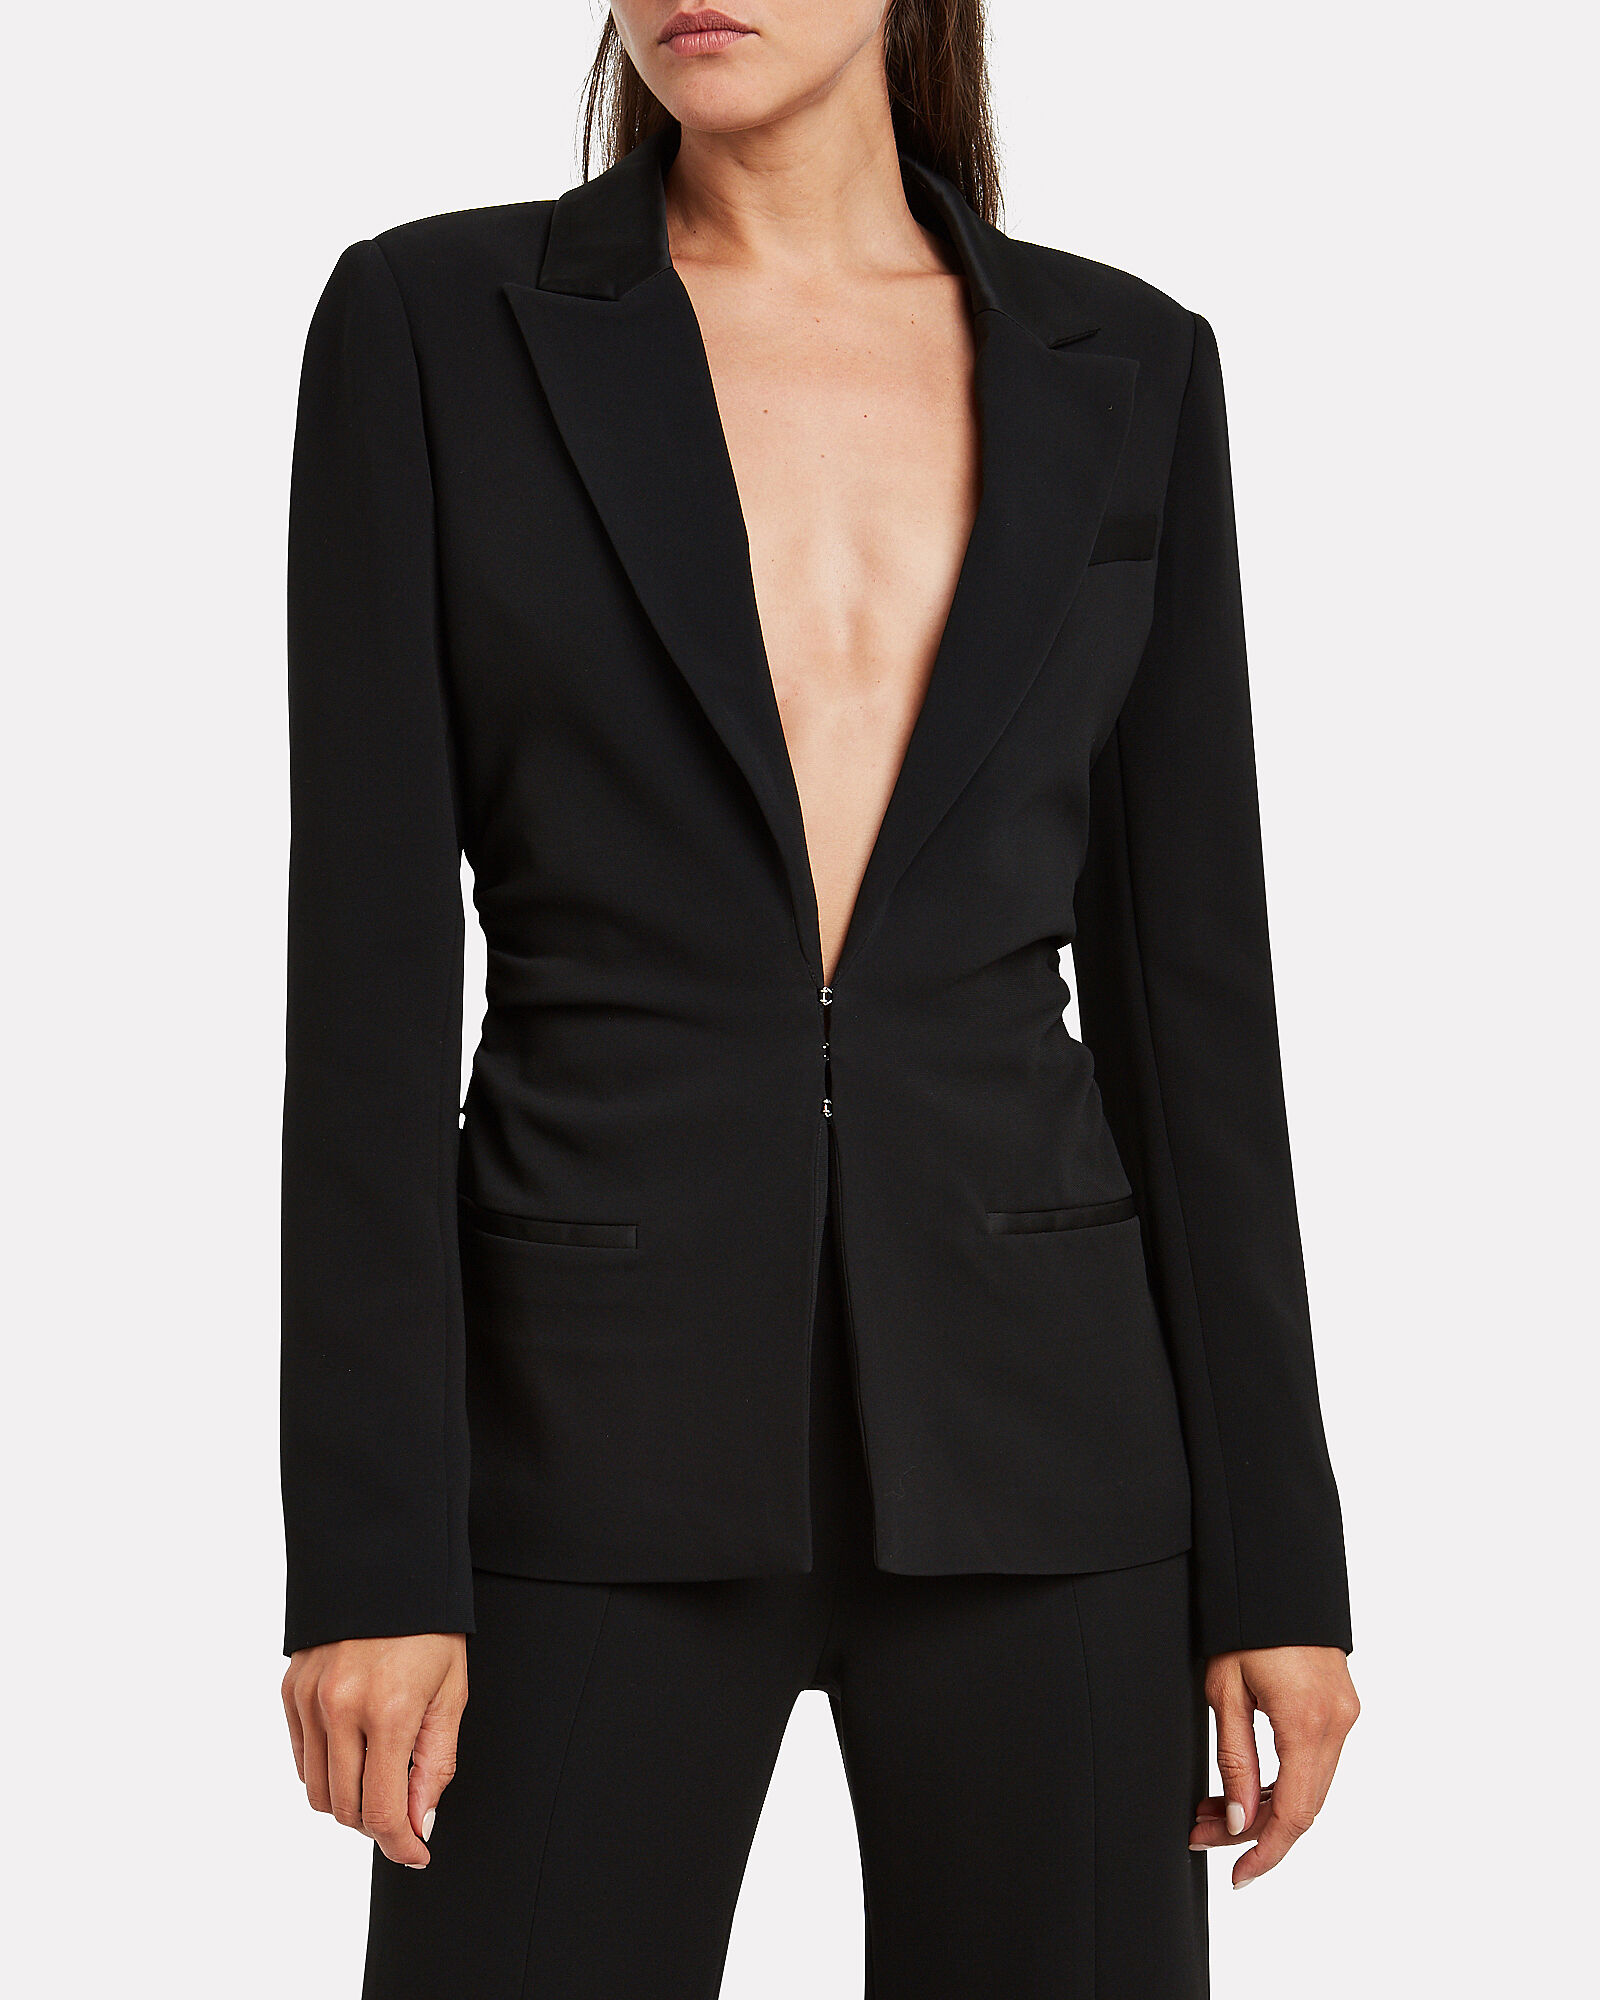 Crepe Satin Slim Blazer, BLACK, hi-res